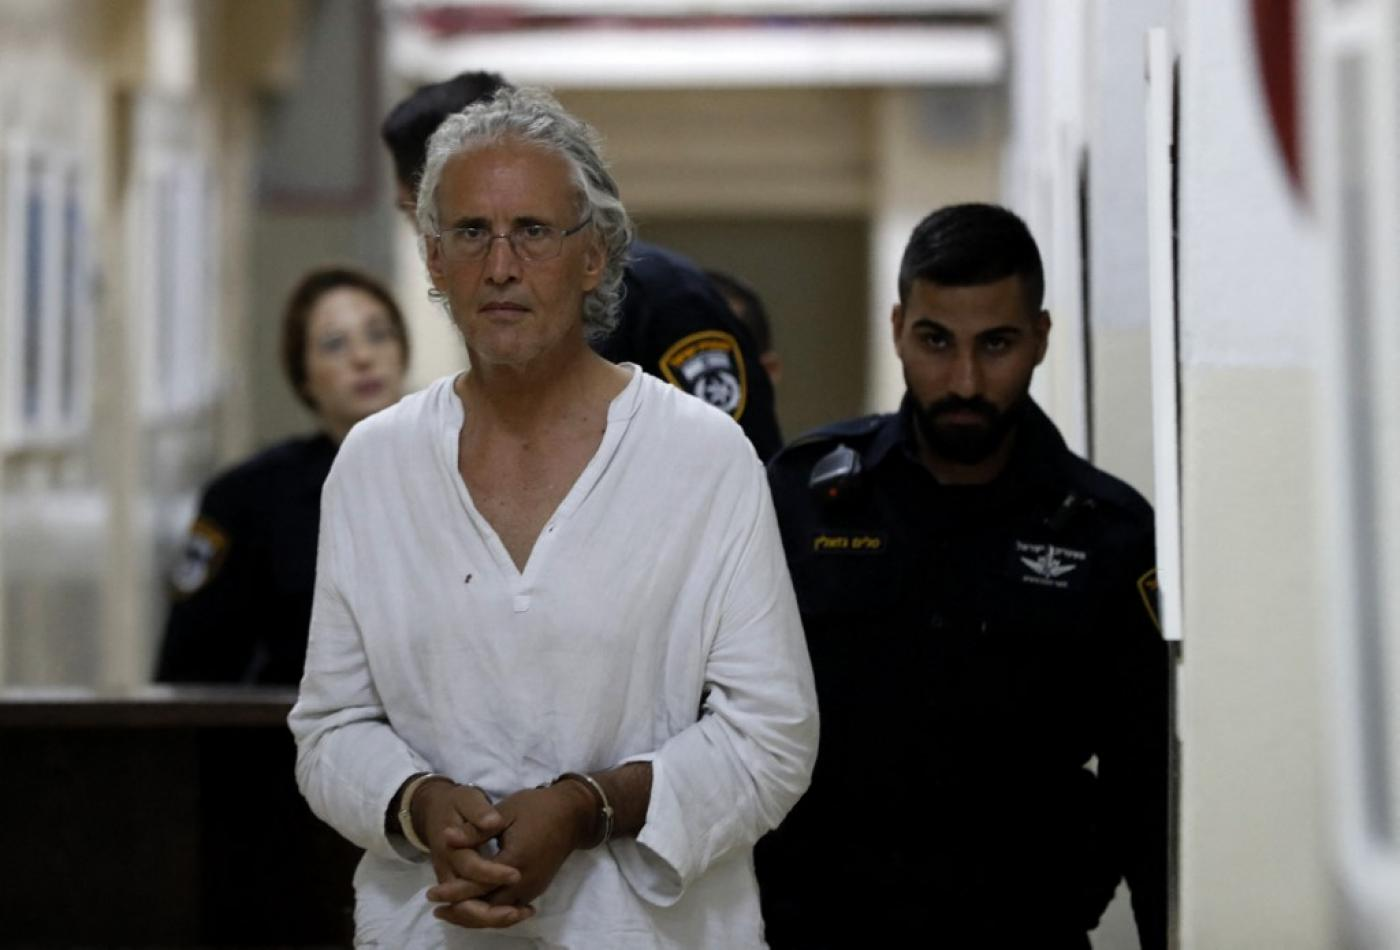 Frank Romano, who was arrested by Israel while protesting against the demolition of a Palestinian village in the West Bank, appears at the Jerusalem court on 16 September 2018 (AFP)